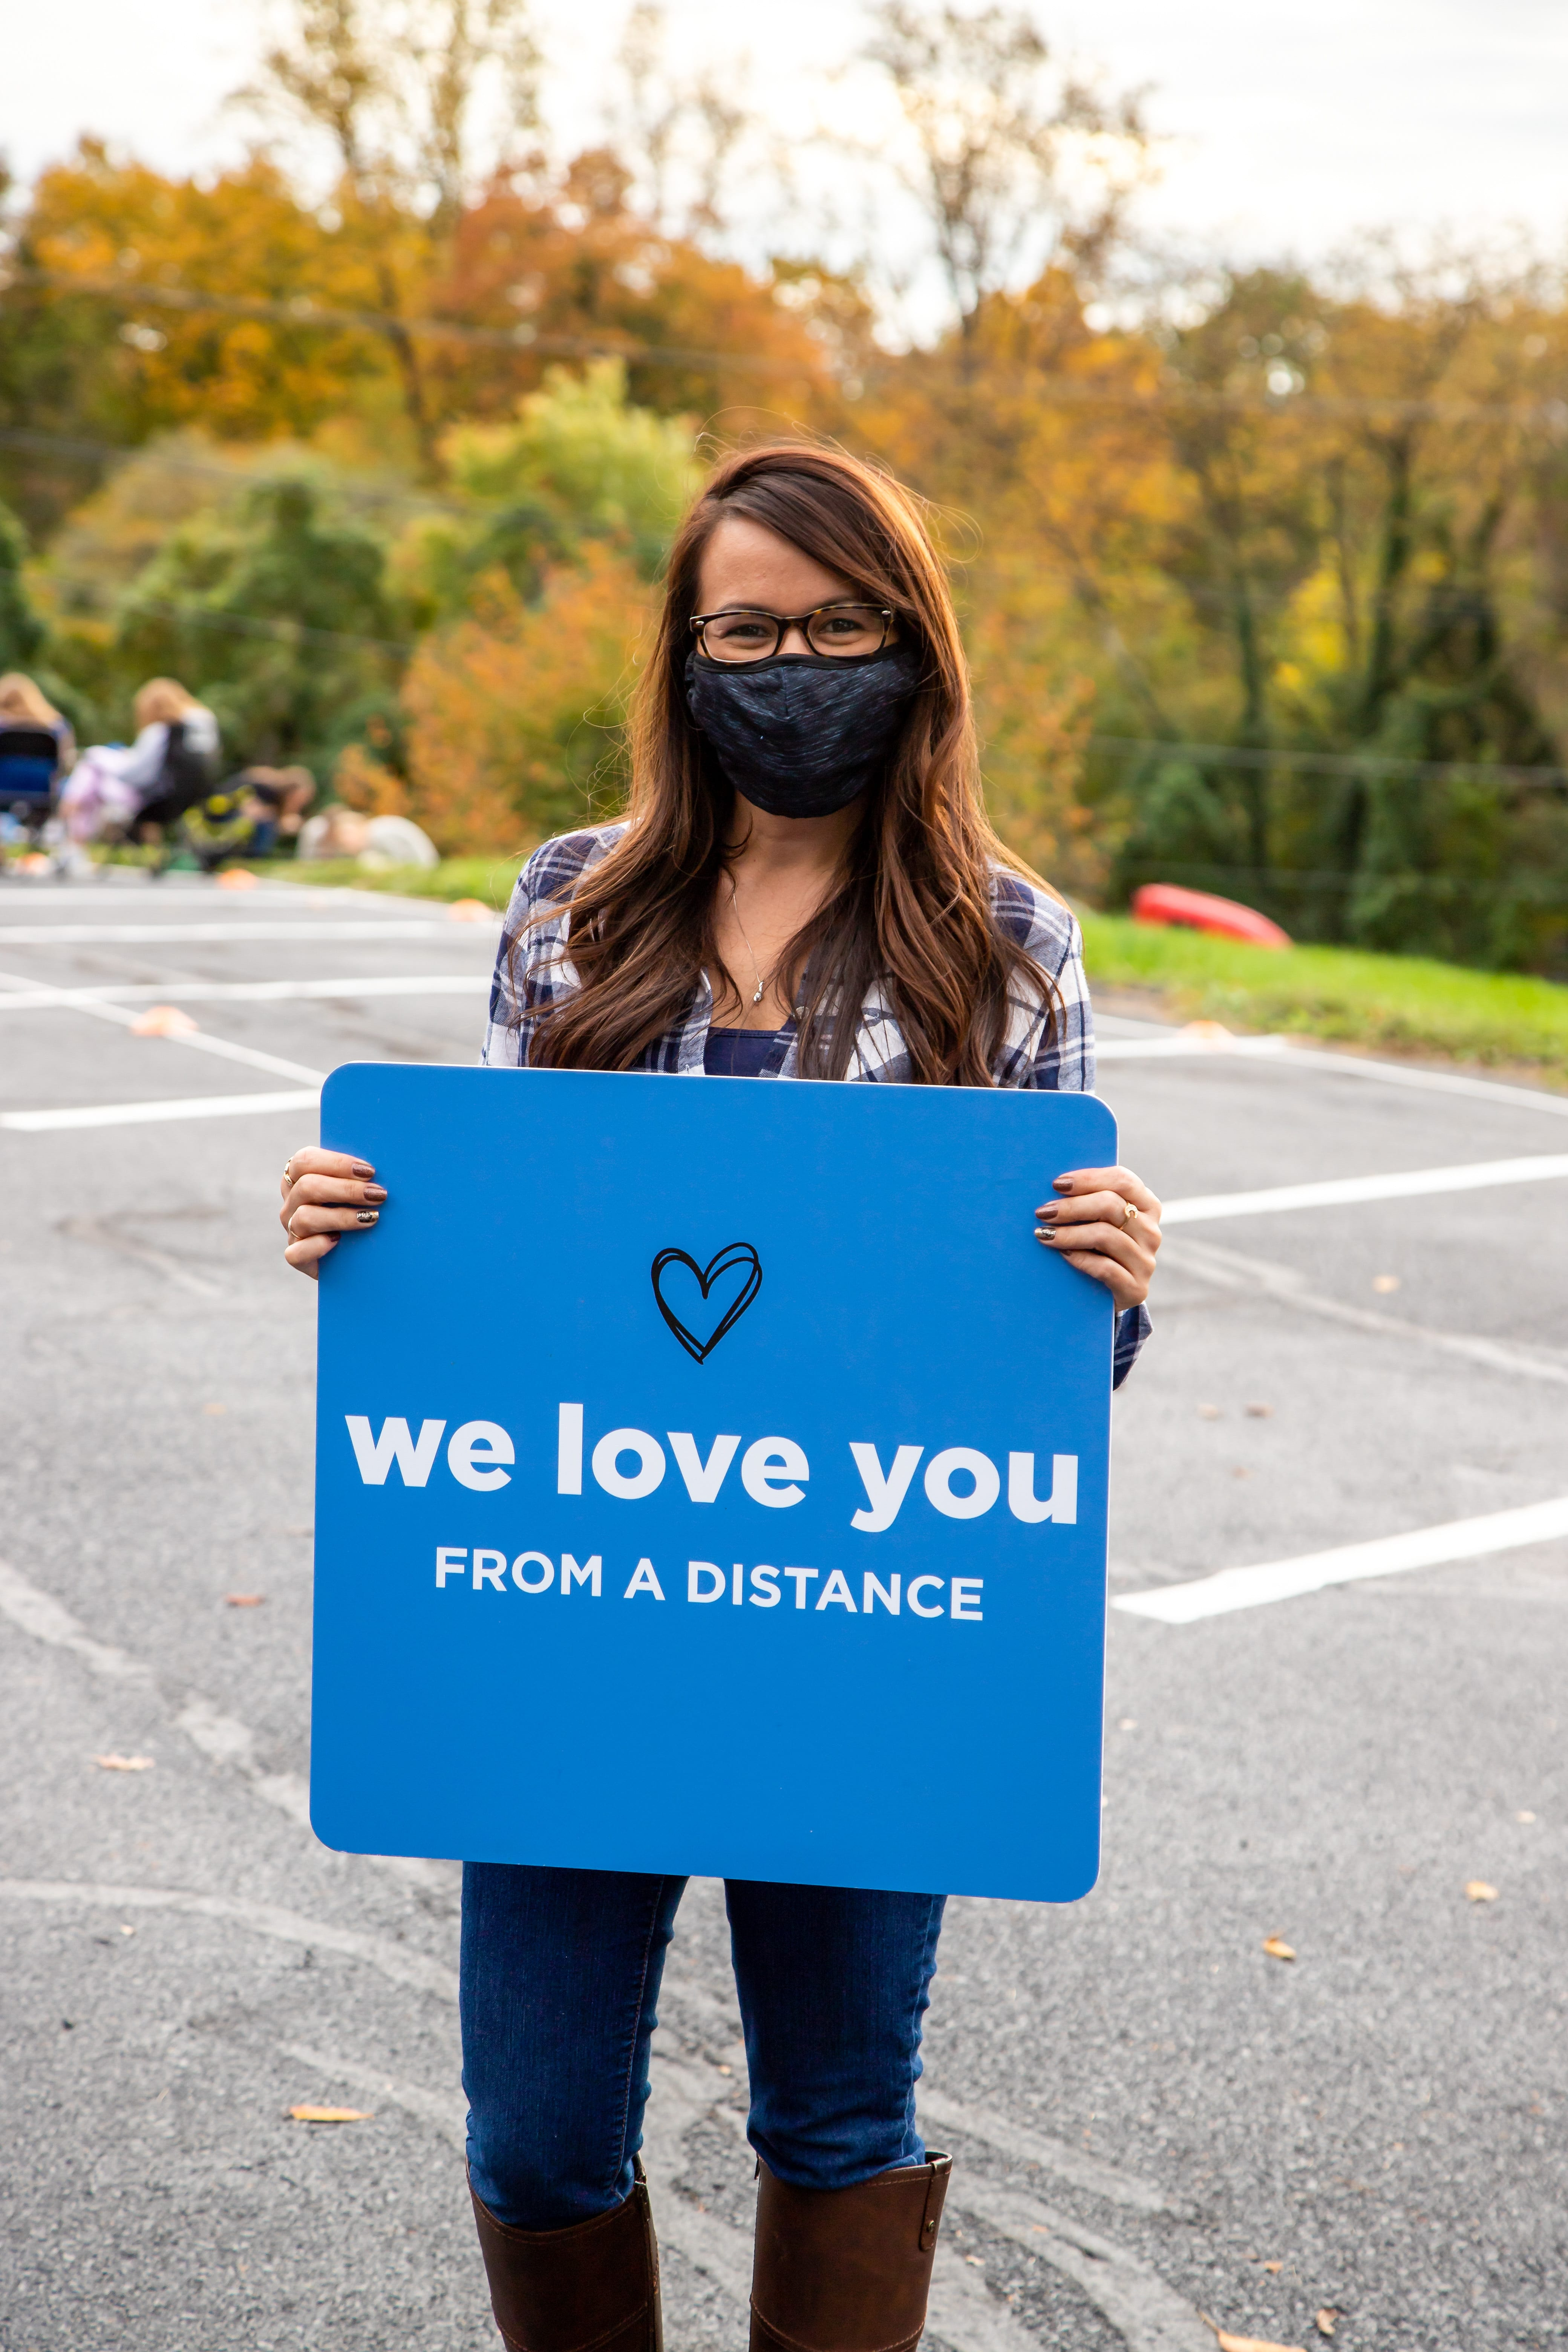 A photo of a young women from catalyst holding a welcome sign